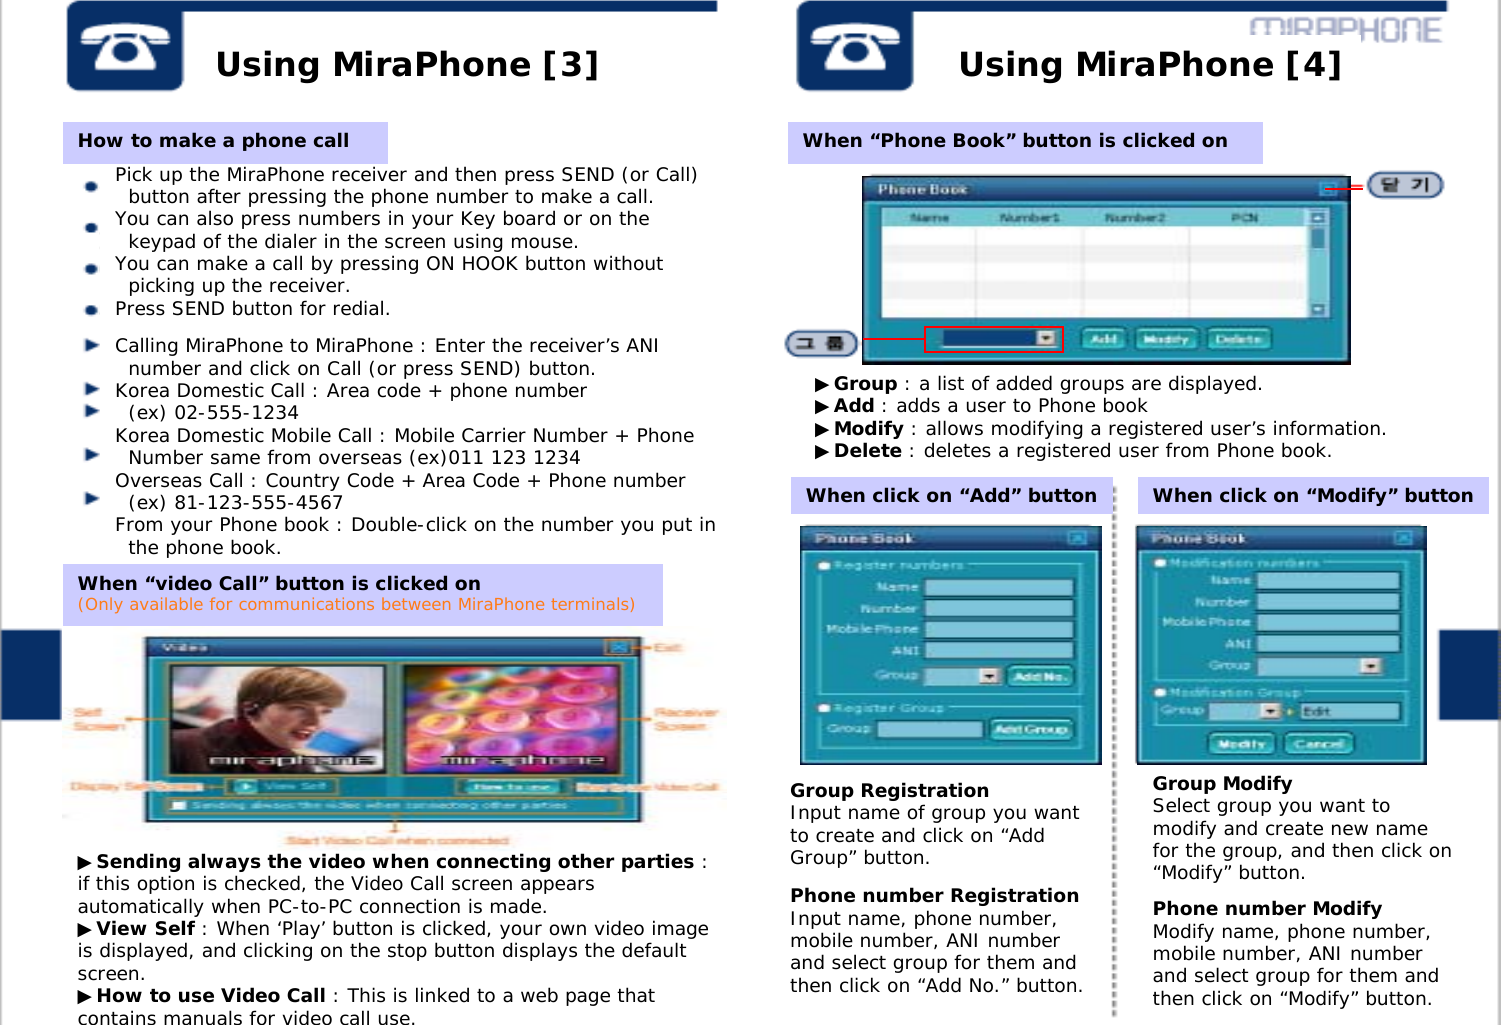 """Using MiraPhone [3] Using MiraPhone [4]Pick up the MiraPhone receiver and then press SEND (or Call)  button after pressing the phone number to make a call.You can also press numbers in your Key board or on thekeypad of the dialer in the screen using mouse.You can make a call by pressing ON HOOK button withoutpicking up the receiver.Press SEND button for redial.Calling MiraPhone to MiraPhone : Enter the receiver's ANInumber and click on Call (or press SEND) button. Korea Domestic Call : Area code + phone number (ex) 02-555-1234 Korea Domestic Mobile Call : Mobile Carrier Number + PhoneNumber same from overseas (ex)011 123 1234 Overseas Call : Country Code + Area Code + Phone number (ex) 81-123-555-4567From your Phone book : Double-click on the number you put inthe phone book.▶Sending always the video when connecting other parties : if this option is checked, the Video Call screen appears automatically when PC-to-PC connection is made.▶View Self : When 'Play' button is clicked, your own video image is displayed, and clicking on the stop button displays the default screen. ▶How to use Video Call : This is linked to a web page that contains manuals for video call use. ▶Group : a list of added groups are displayed.▶Add : adds a user to Phone book ▶Modify : allows modifying a registered user's information.▶Delete : deletes a registered user from Phone book.When """"video Call"""" button is clicked on (Only available for communications between MiraPhone terminals)How to make a phone call When """"Phone Book"""" button is clicked onGroup RegistrationInput name of group you want to create and click on """"Add Group"""" button.Group ModifySelect group you want to modify and create new name for the group, and then click on """"Modify"""" button.Phone number RegistrationInput name, phone number, mobile number, ANI number and select group for them and then click on """"Add No."""" button.Phone number ModifyModify name, phone number, mobile number, ANI number and select group for them and then click on """"Modif"""